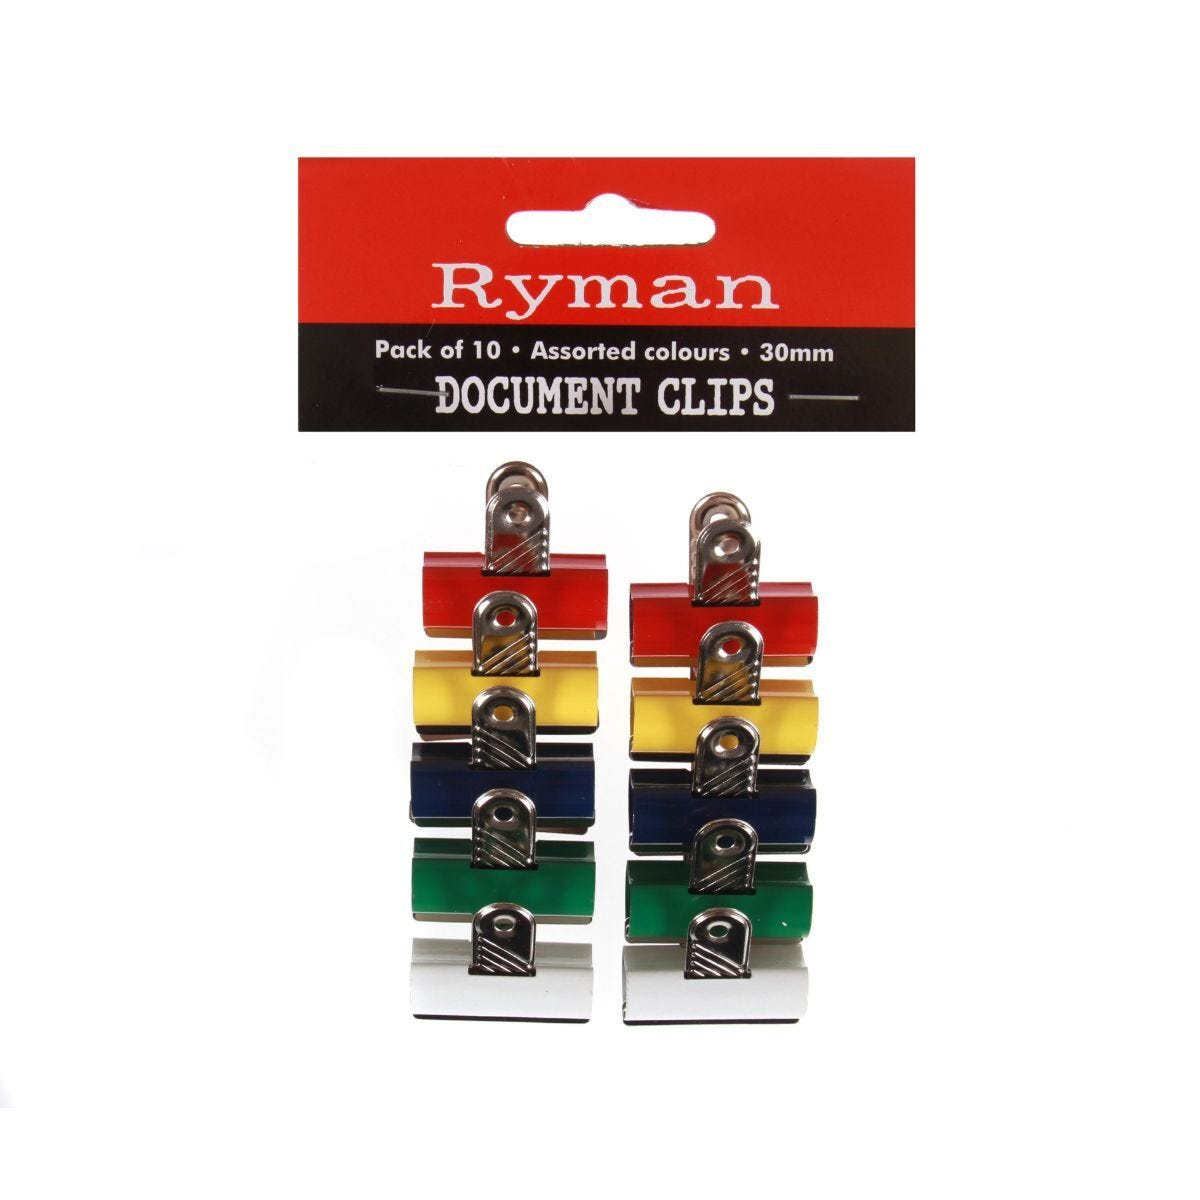 Ryman Document Clips 30mm Pack of 10